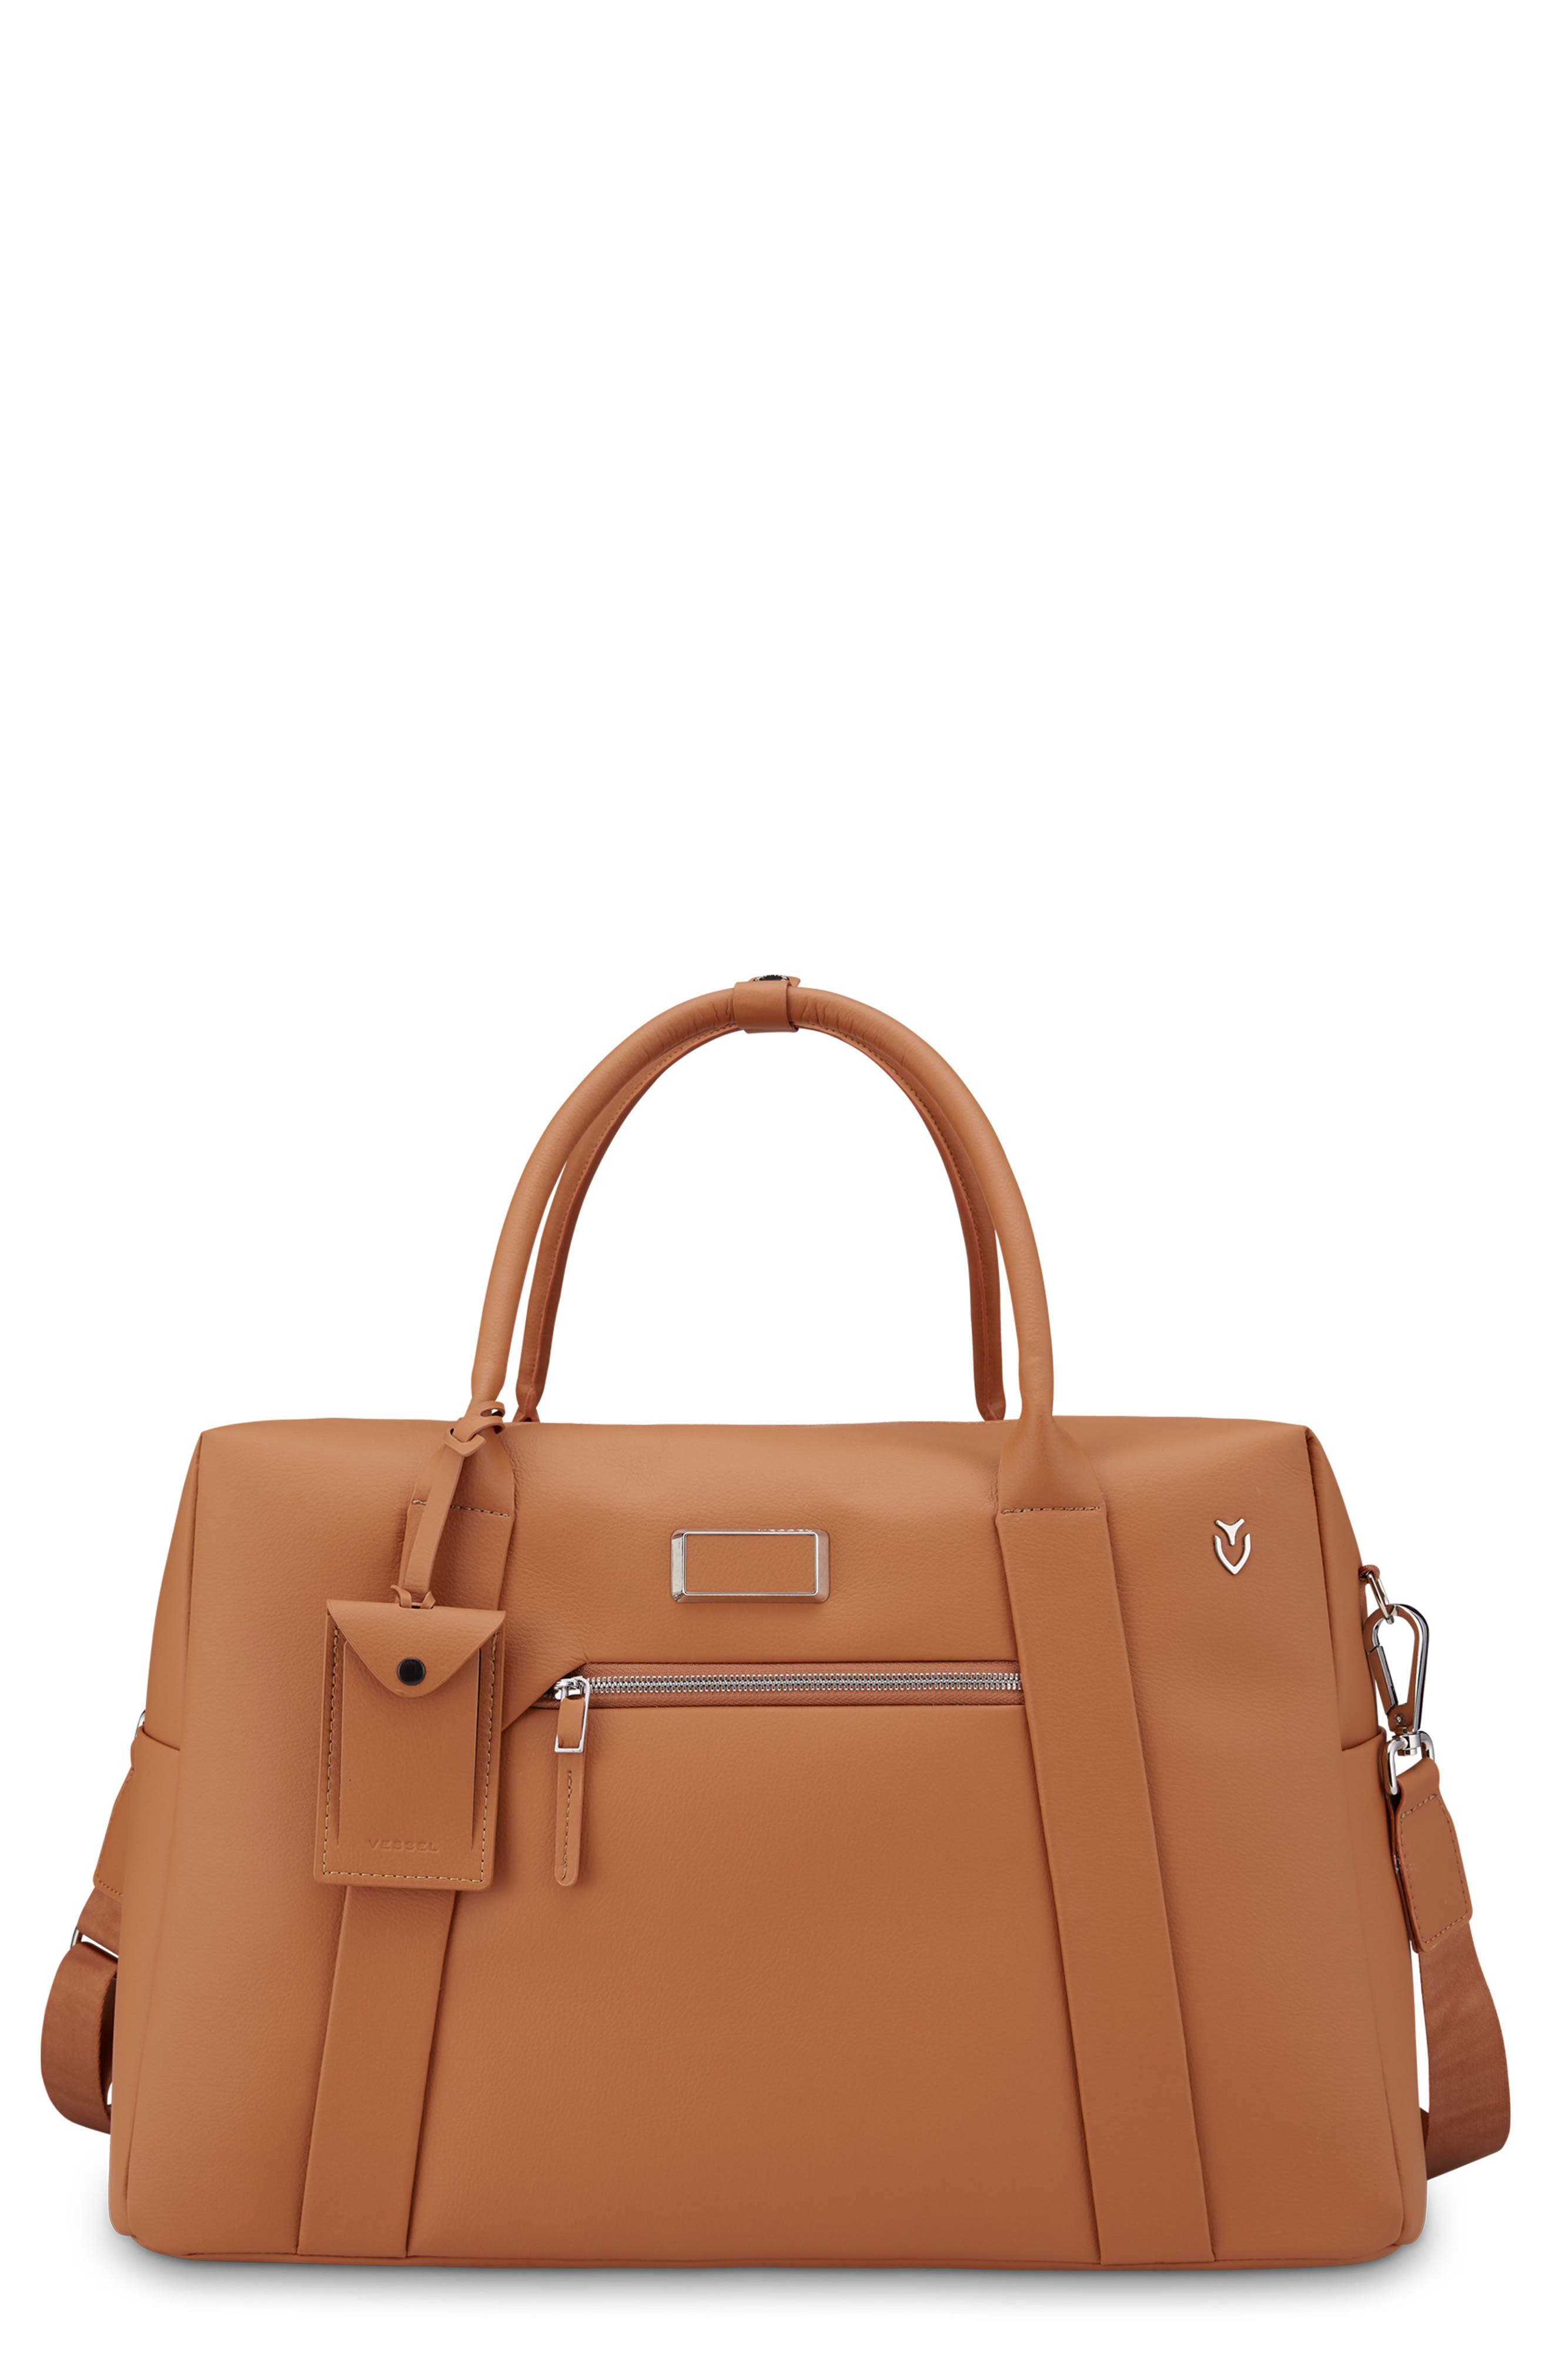 Signature 2.0 Faux Leather Duffel Bag,                             Main thumbnail 1, color,                             Pebbled Tan